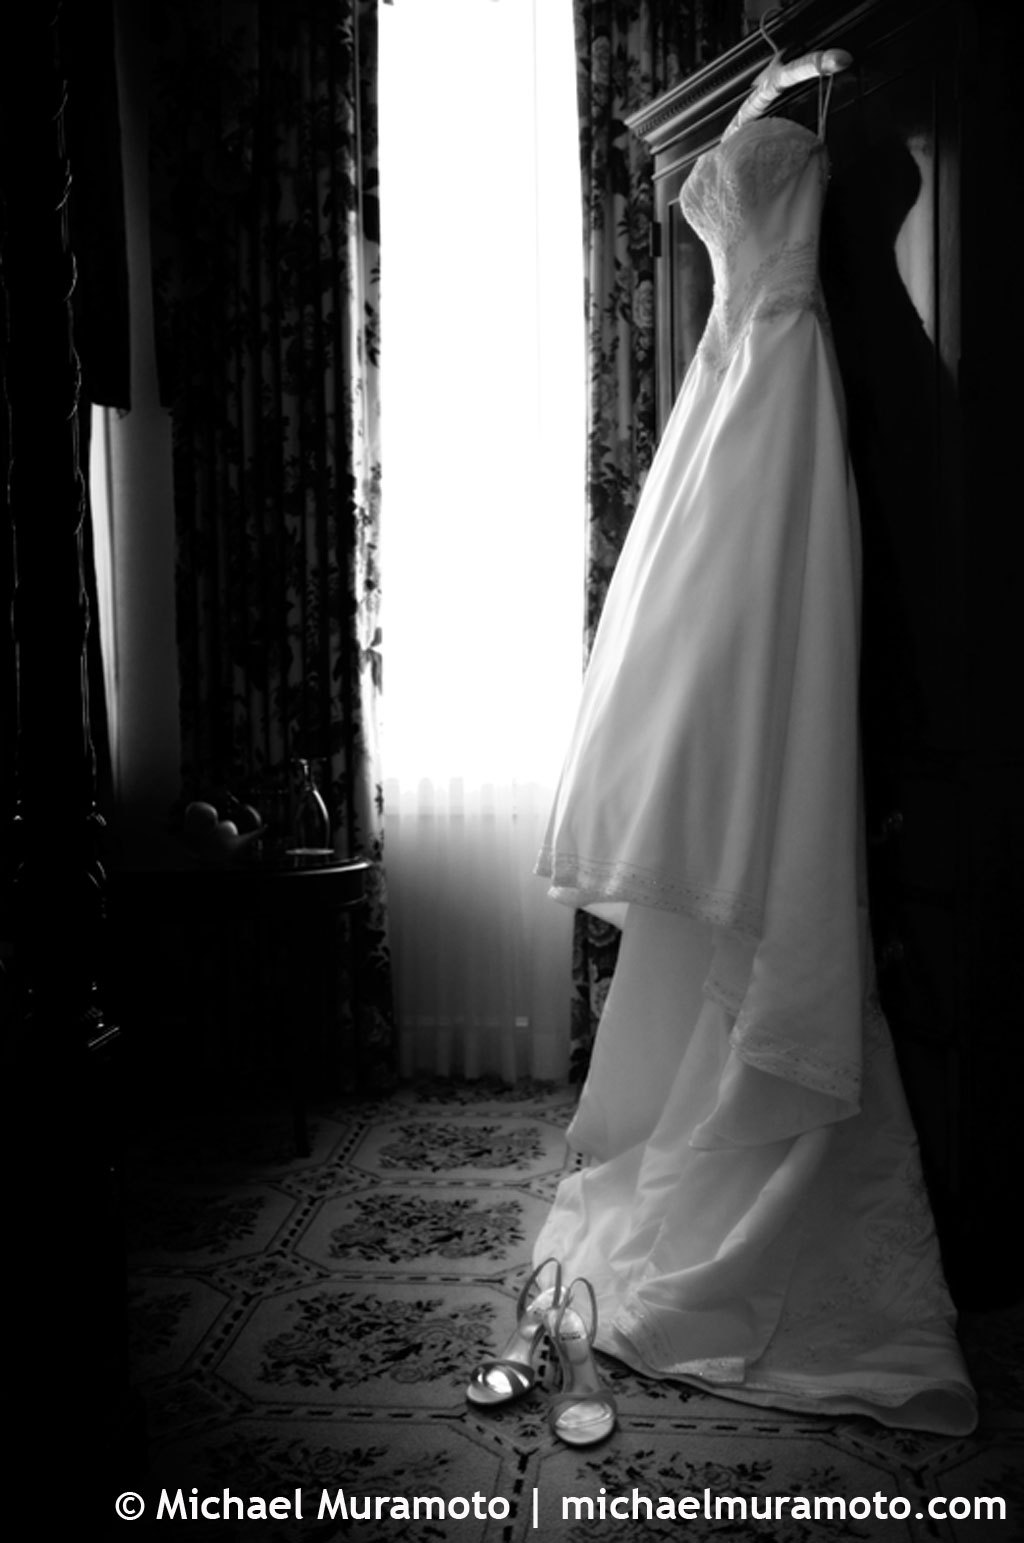 Wedding Dresses, Shoes, Fashion, dress, Black and white, Bw, Michael muramoto photography